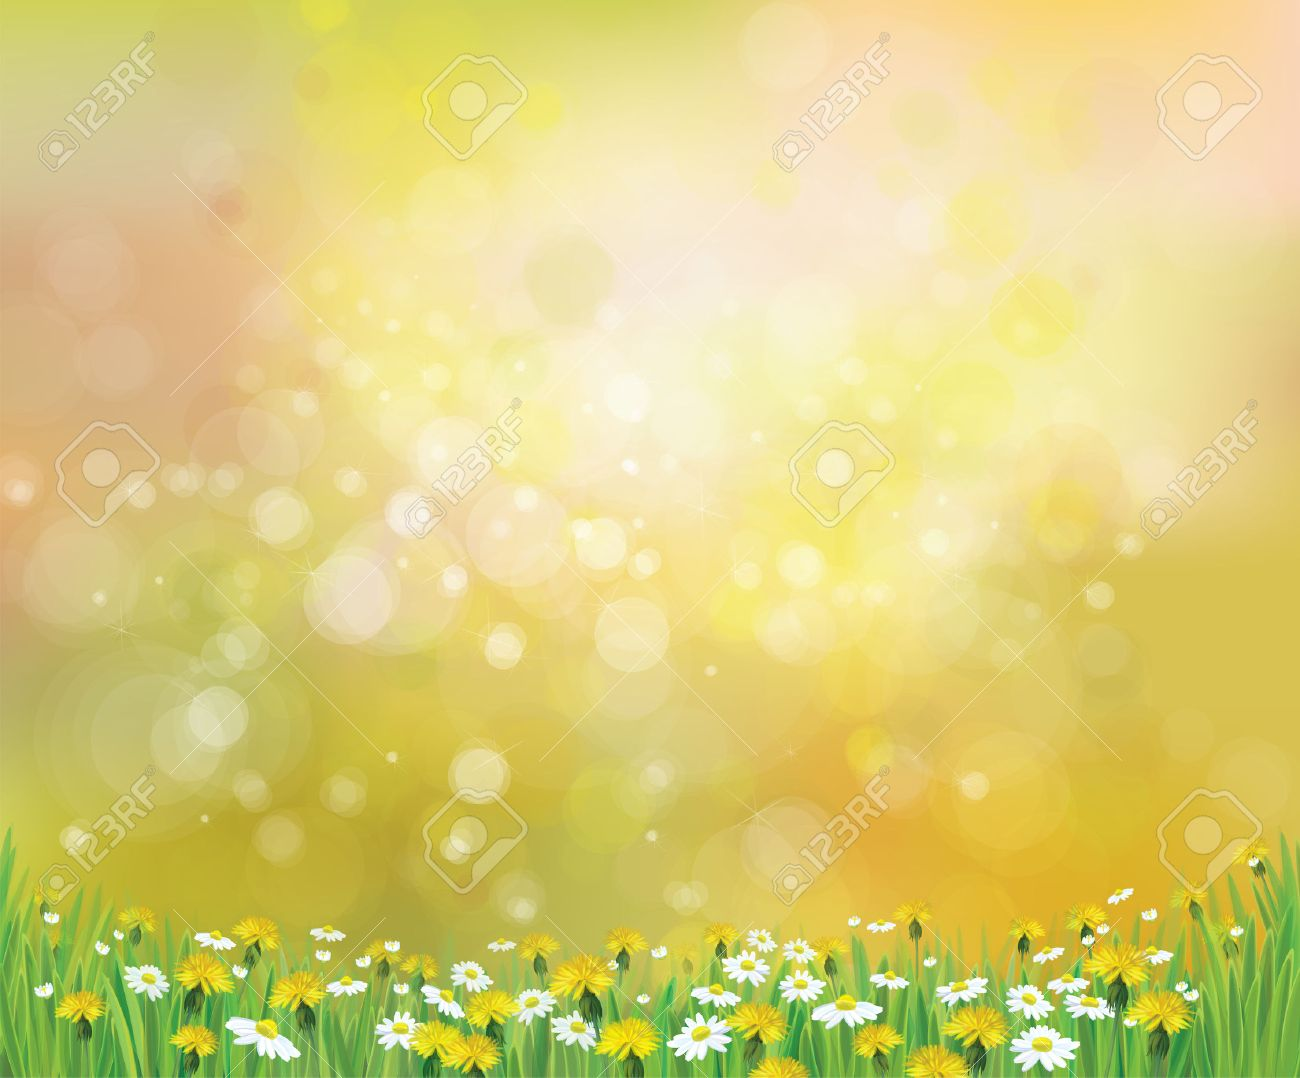 Vector nature spring background with chamomile and dandelions - 25125755